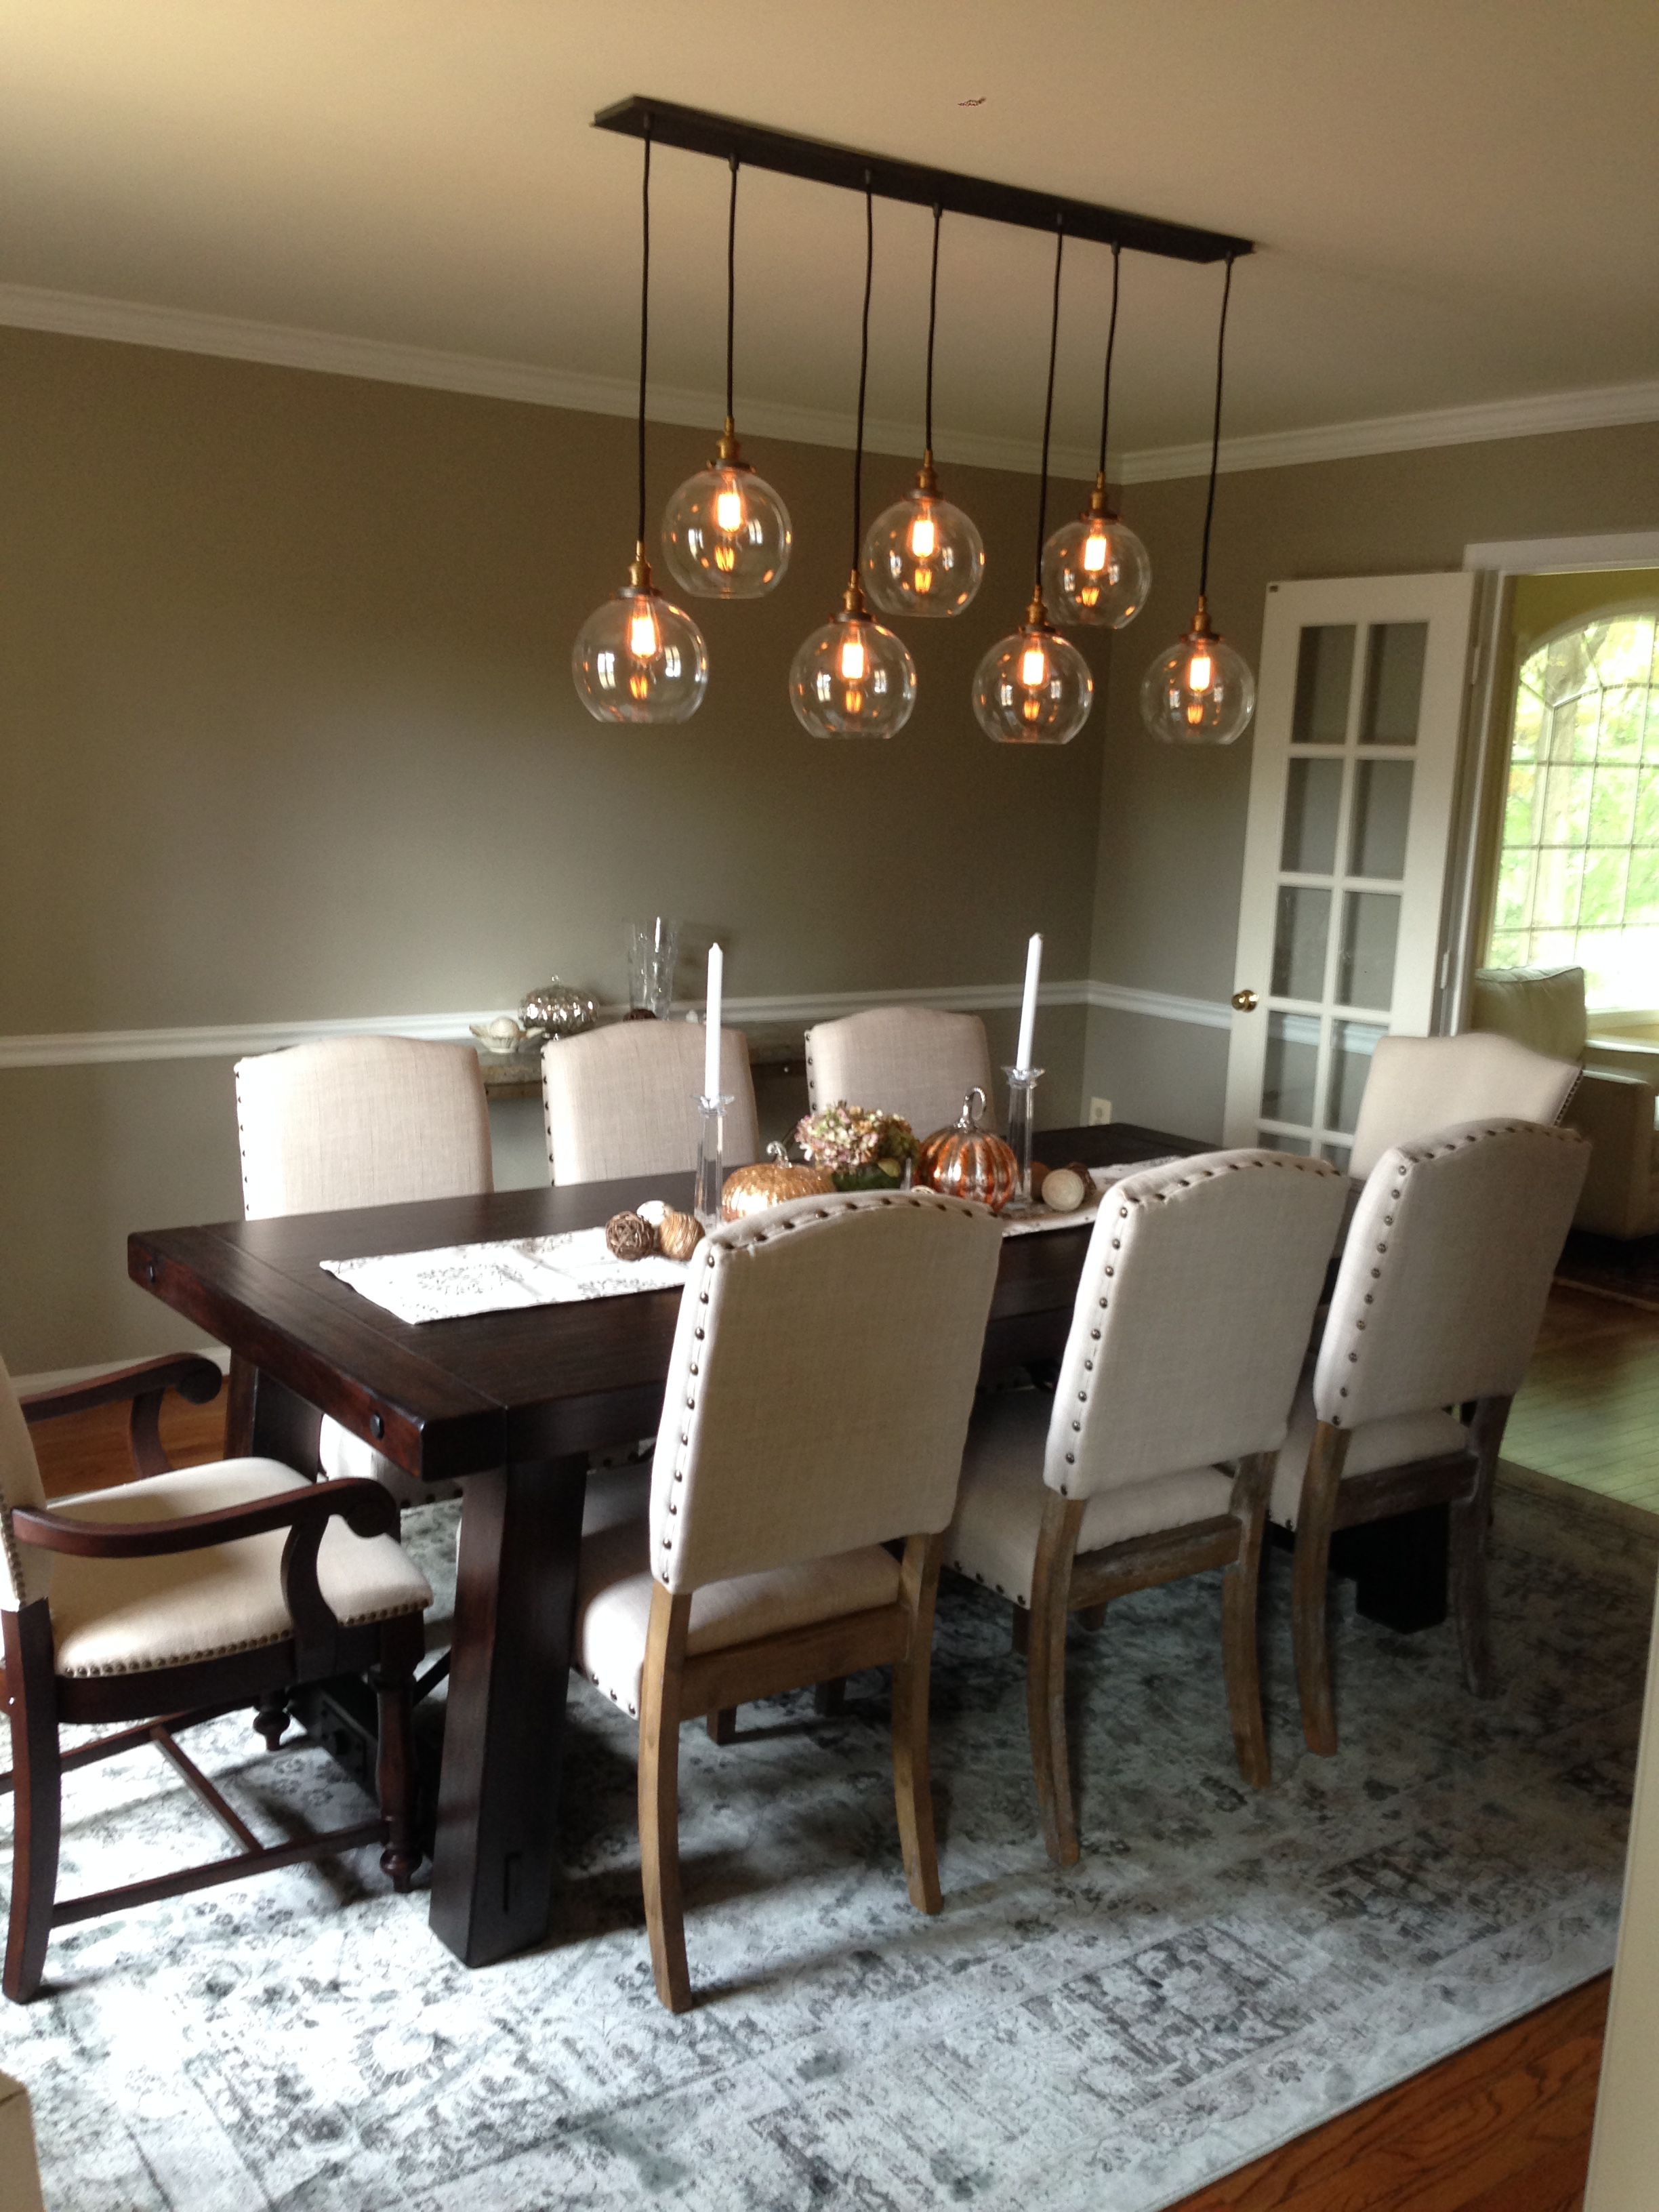 Dining Room Remodel: Restoration Hardware 20th C. Factory Filament Clear  Glass Cafe Rectangular Pendant And Pottery Barn Benchwright Large Extending  Table